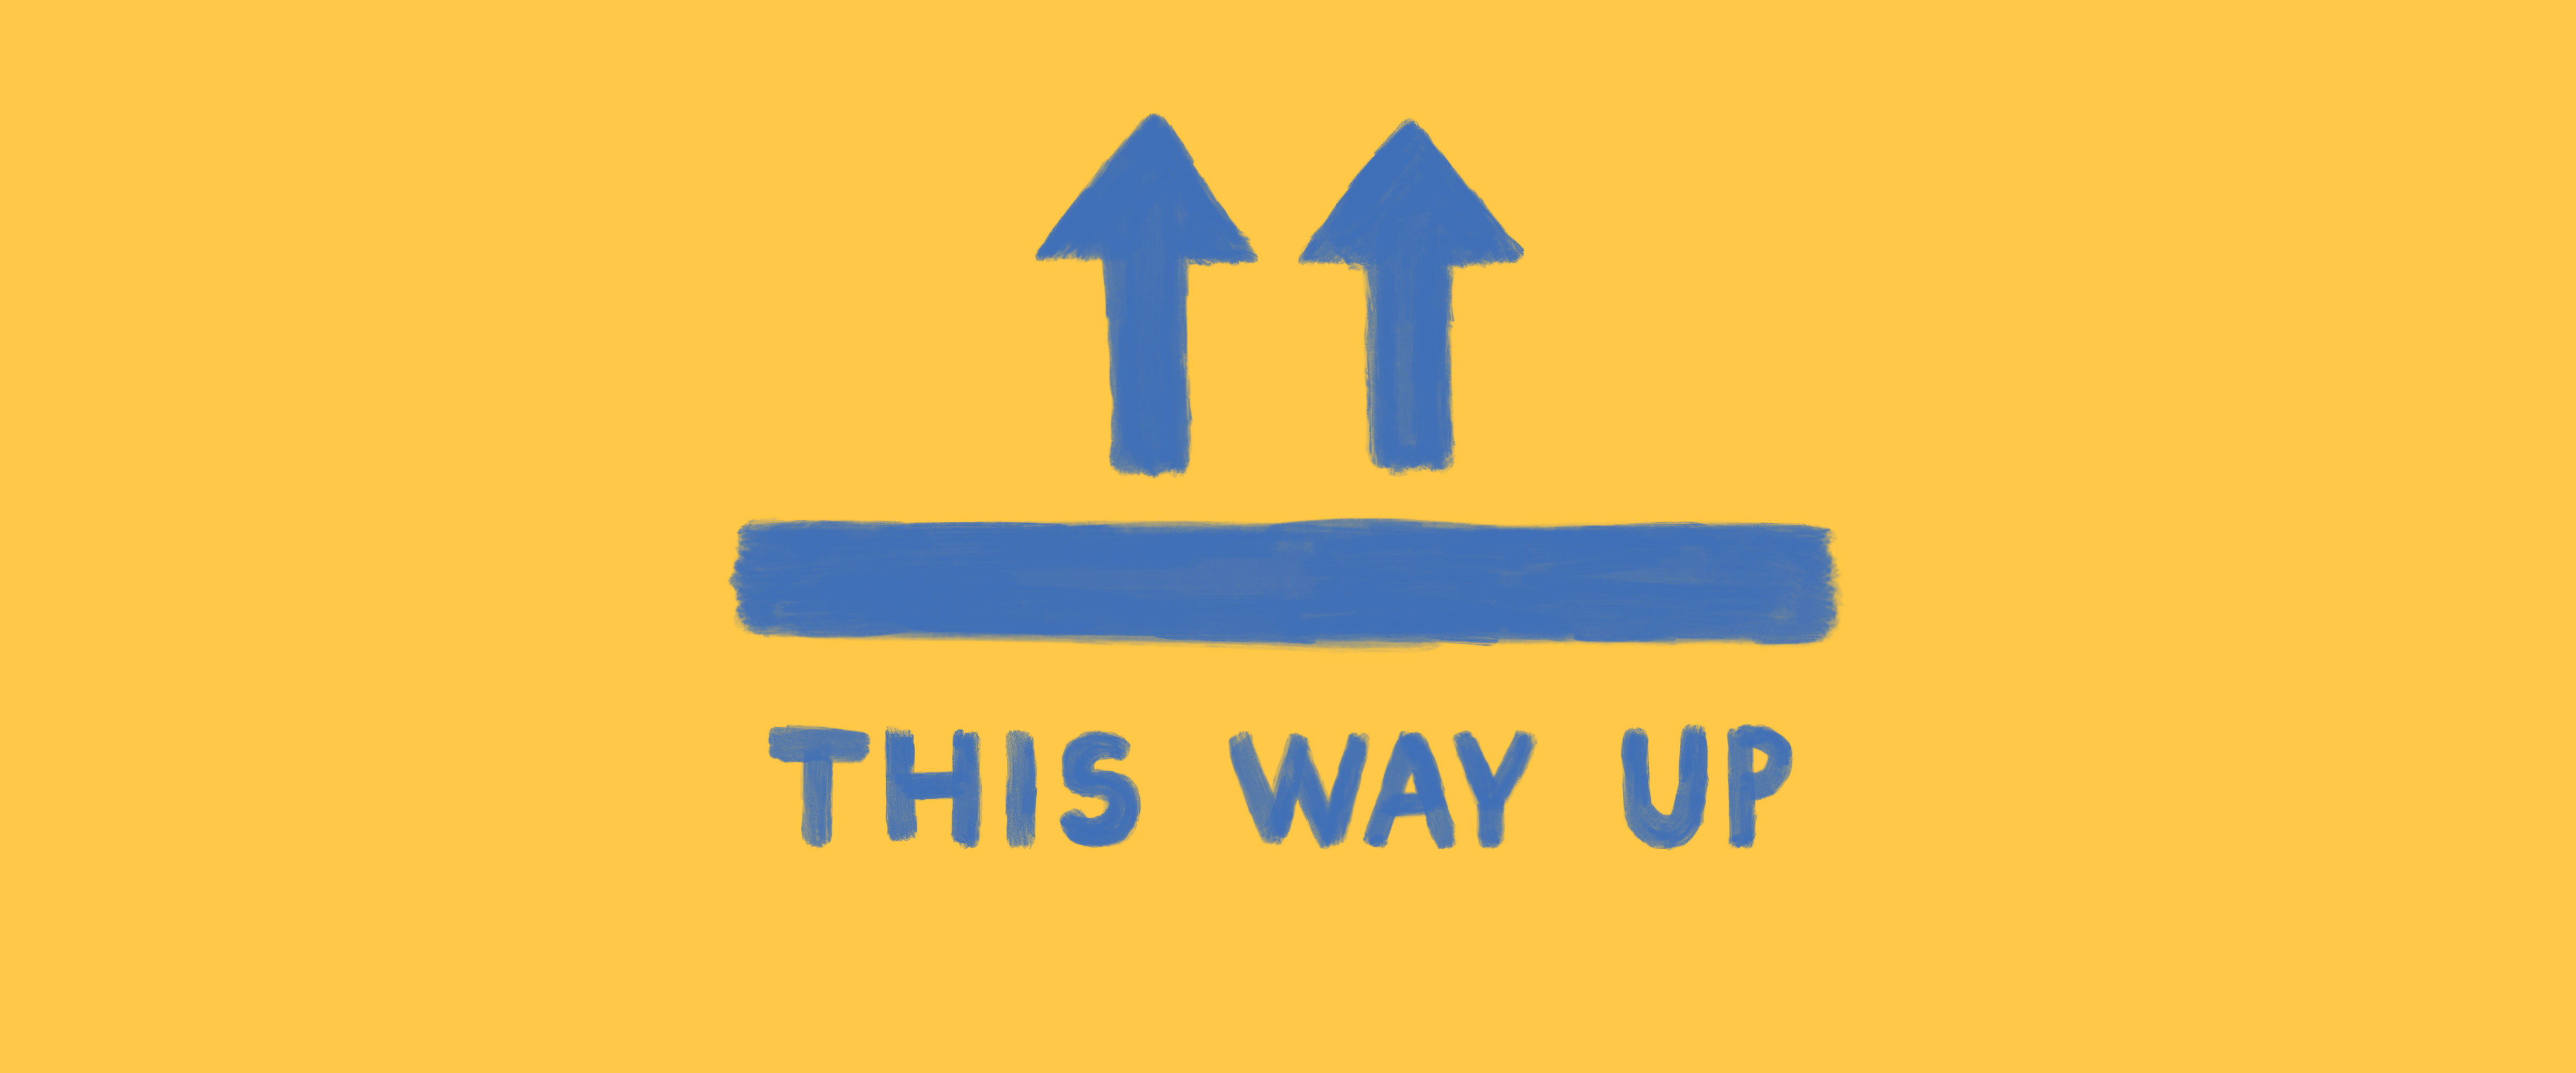 Illustration of two arrows pointing up, and the text 'This way up'